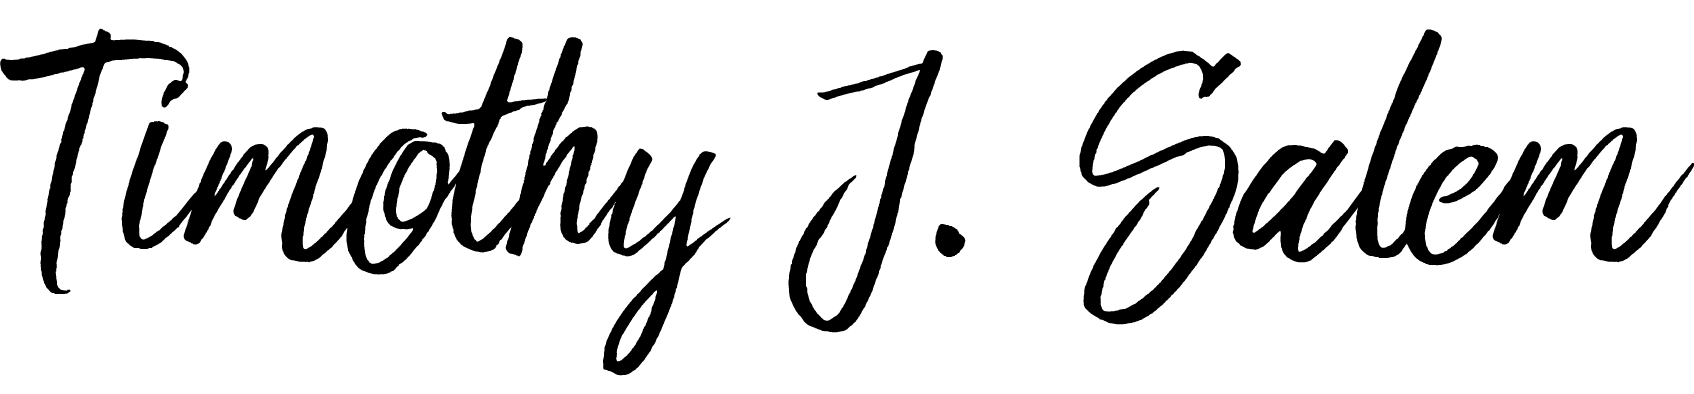 Timothy J. Salem signature